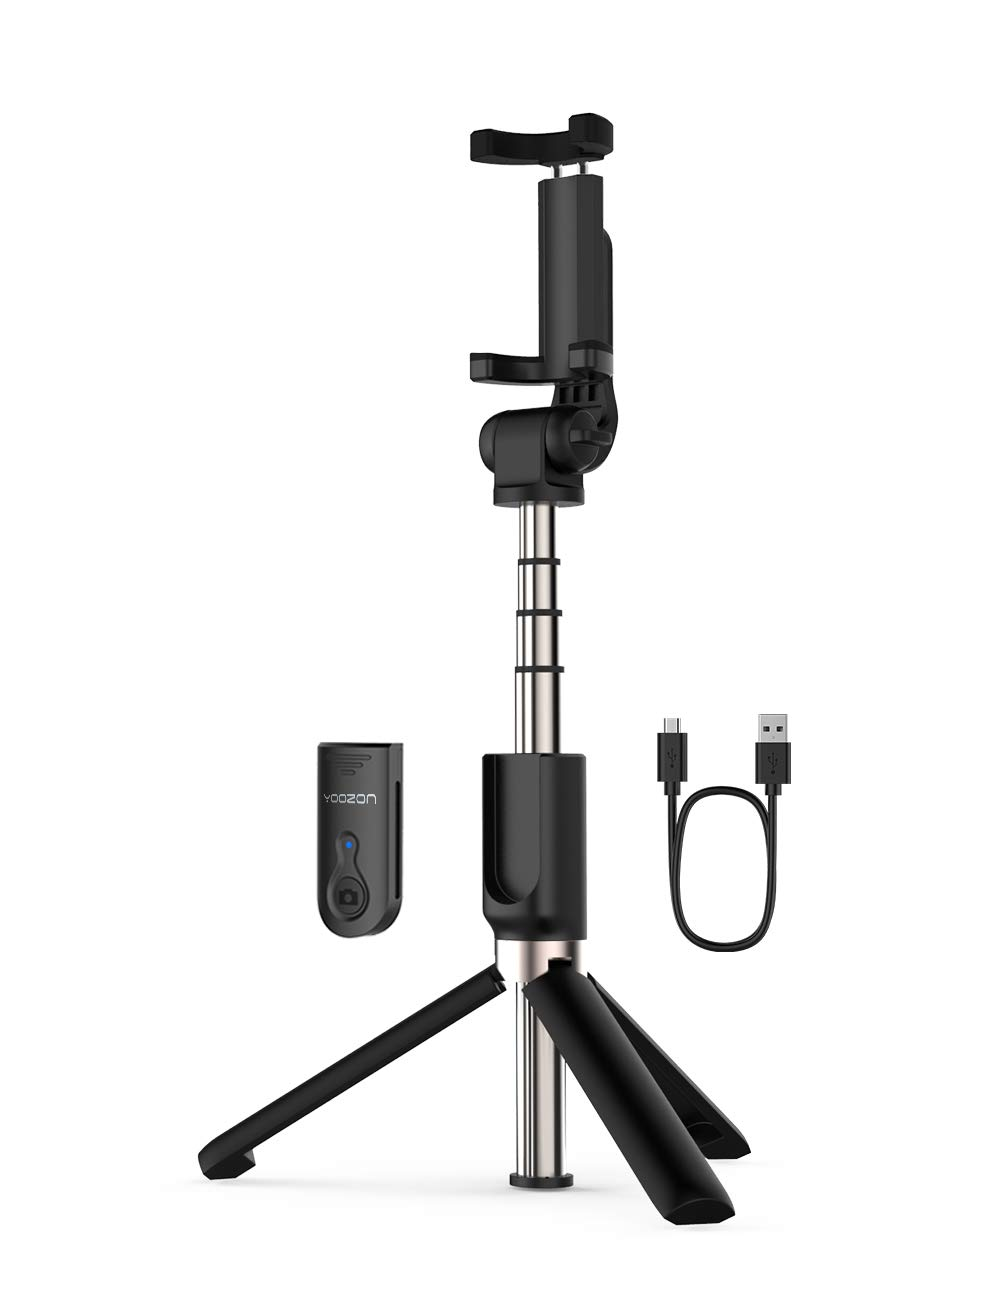 The Yoozon Selfie Stick Tripod travel product recommended by Maria on Lifney.